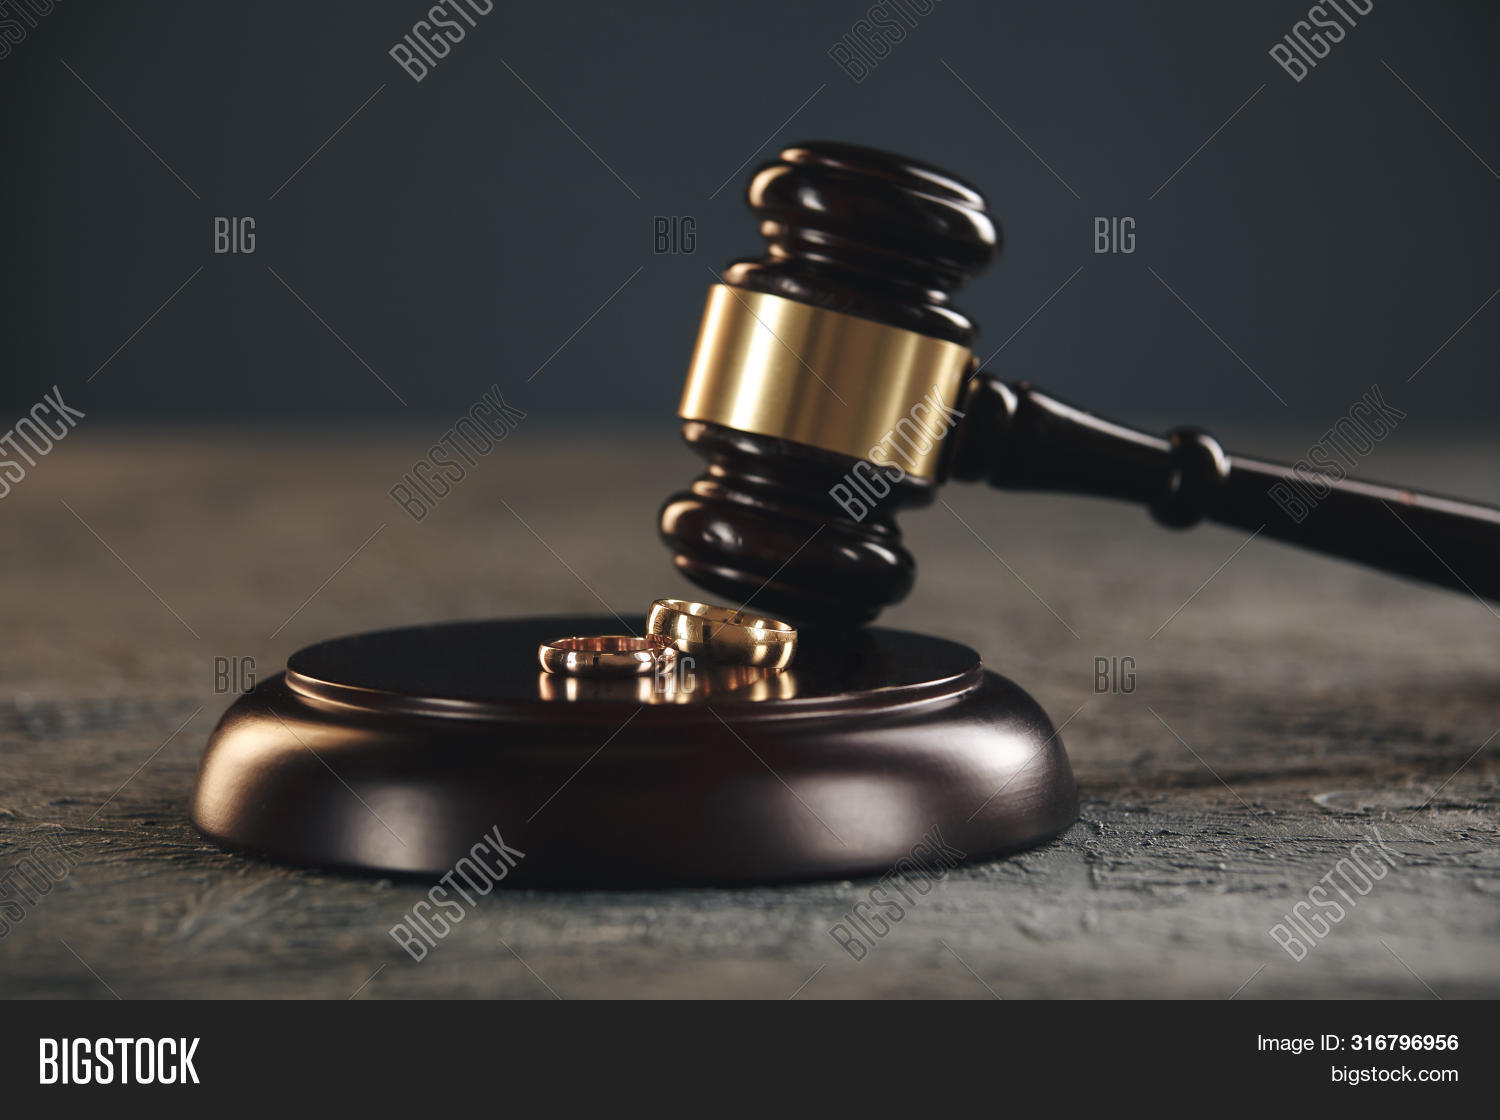 agreement,attorney,breakup,broken,civil,concept,conflict,contract,couple,court,courthouse,courtroom,divorce,end,engagement,family,gavel,golden,hammer,hand,judge,law,lawyer,legal,man,marriage,problem,proceeding,ring,sad,separation,split,spouse,two,wedding,wooden